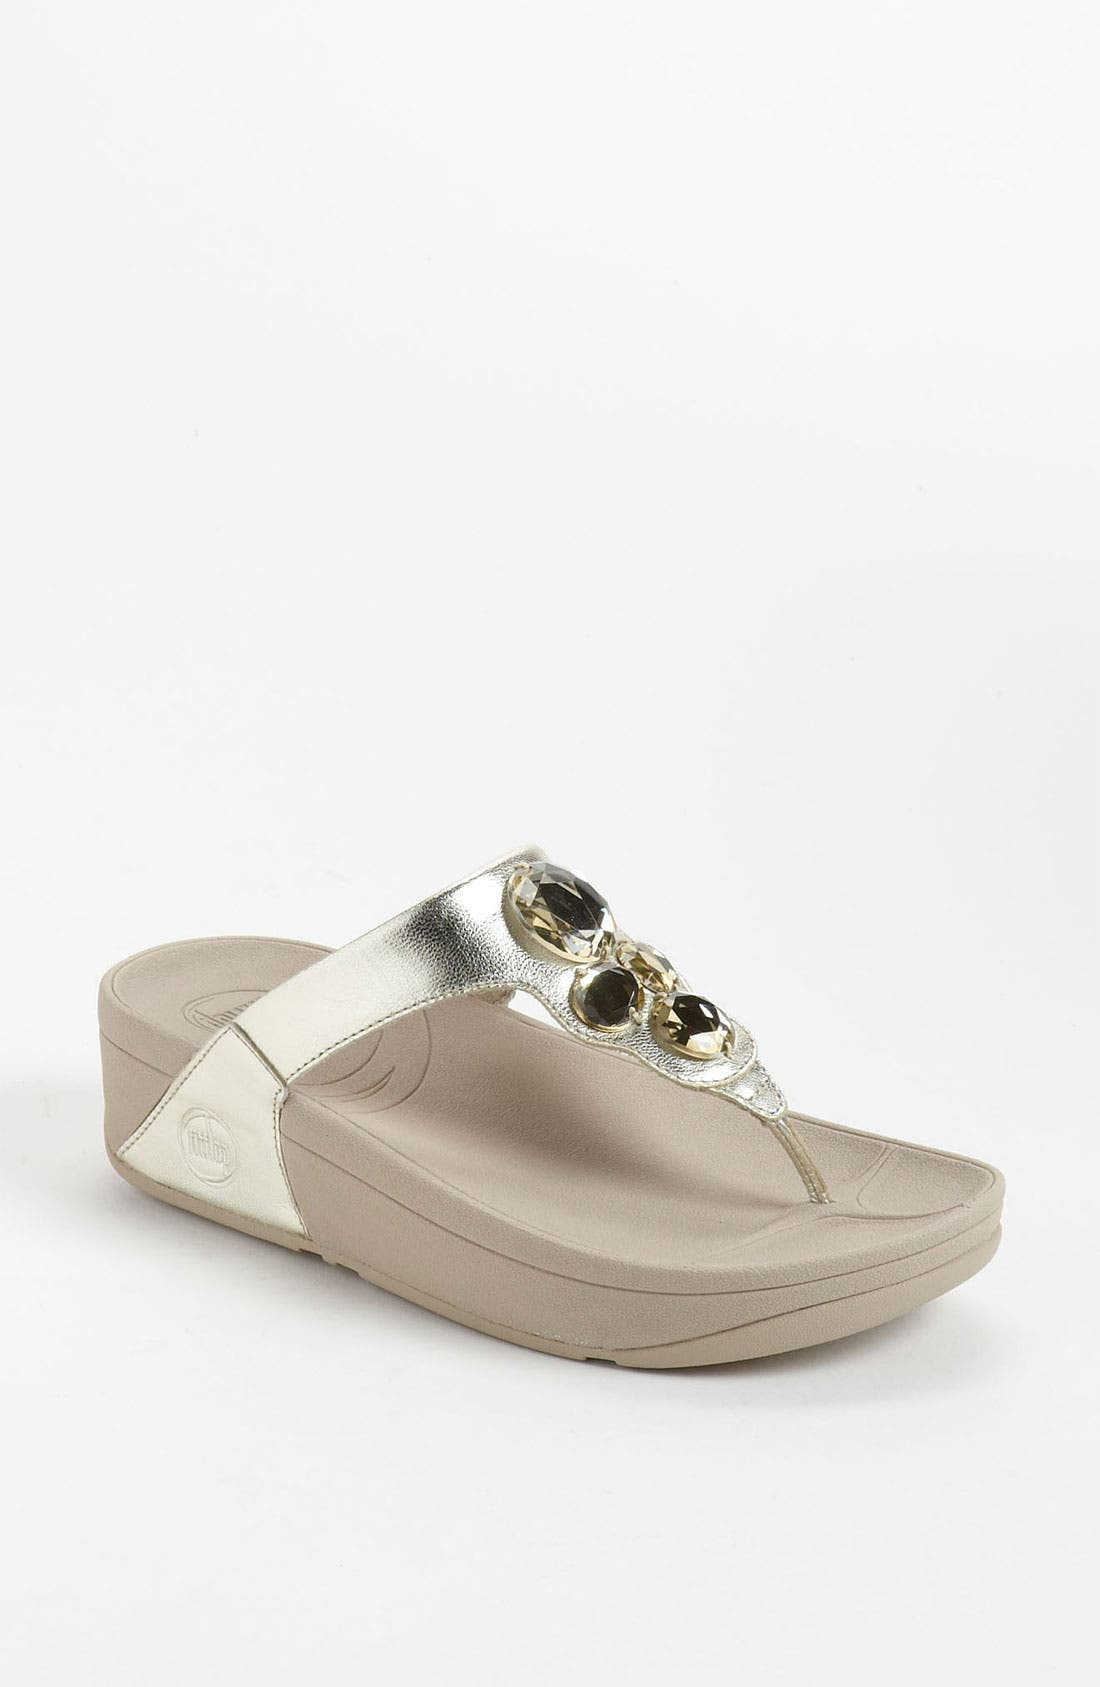 Alternate Image 1 Selected - FitFlop 'Lunetta' Sandal